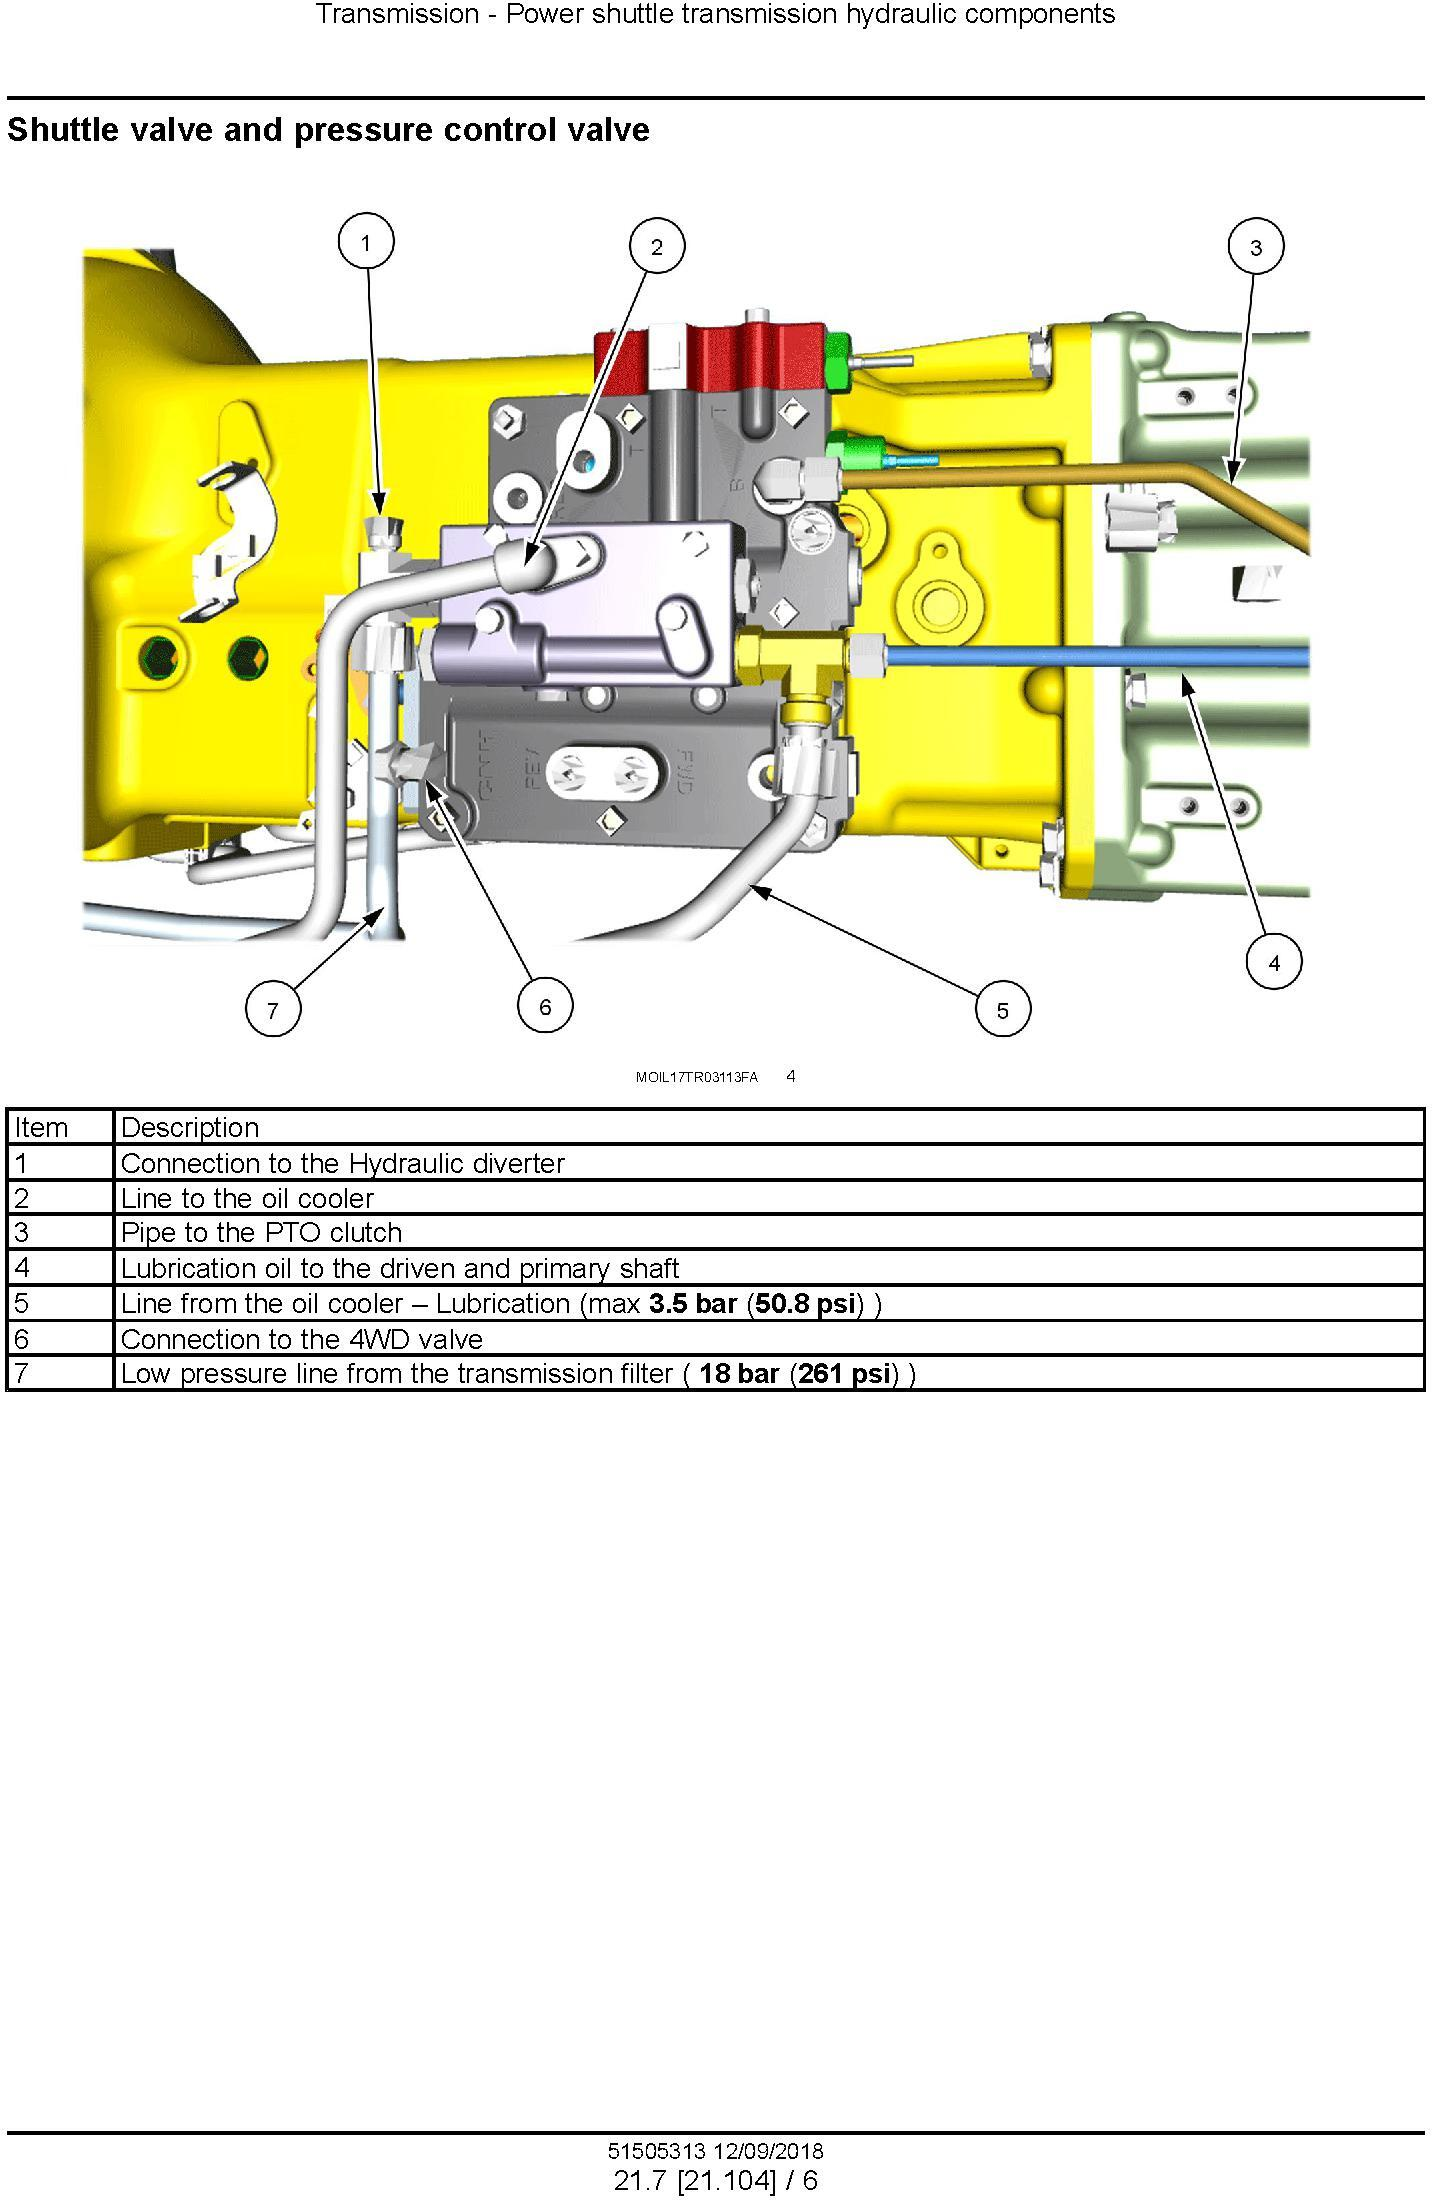 New Holland T4.55, T4.65, T4.75 Tier 4B final Stage IV Tractor Service Manual - 1